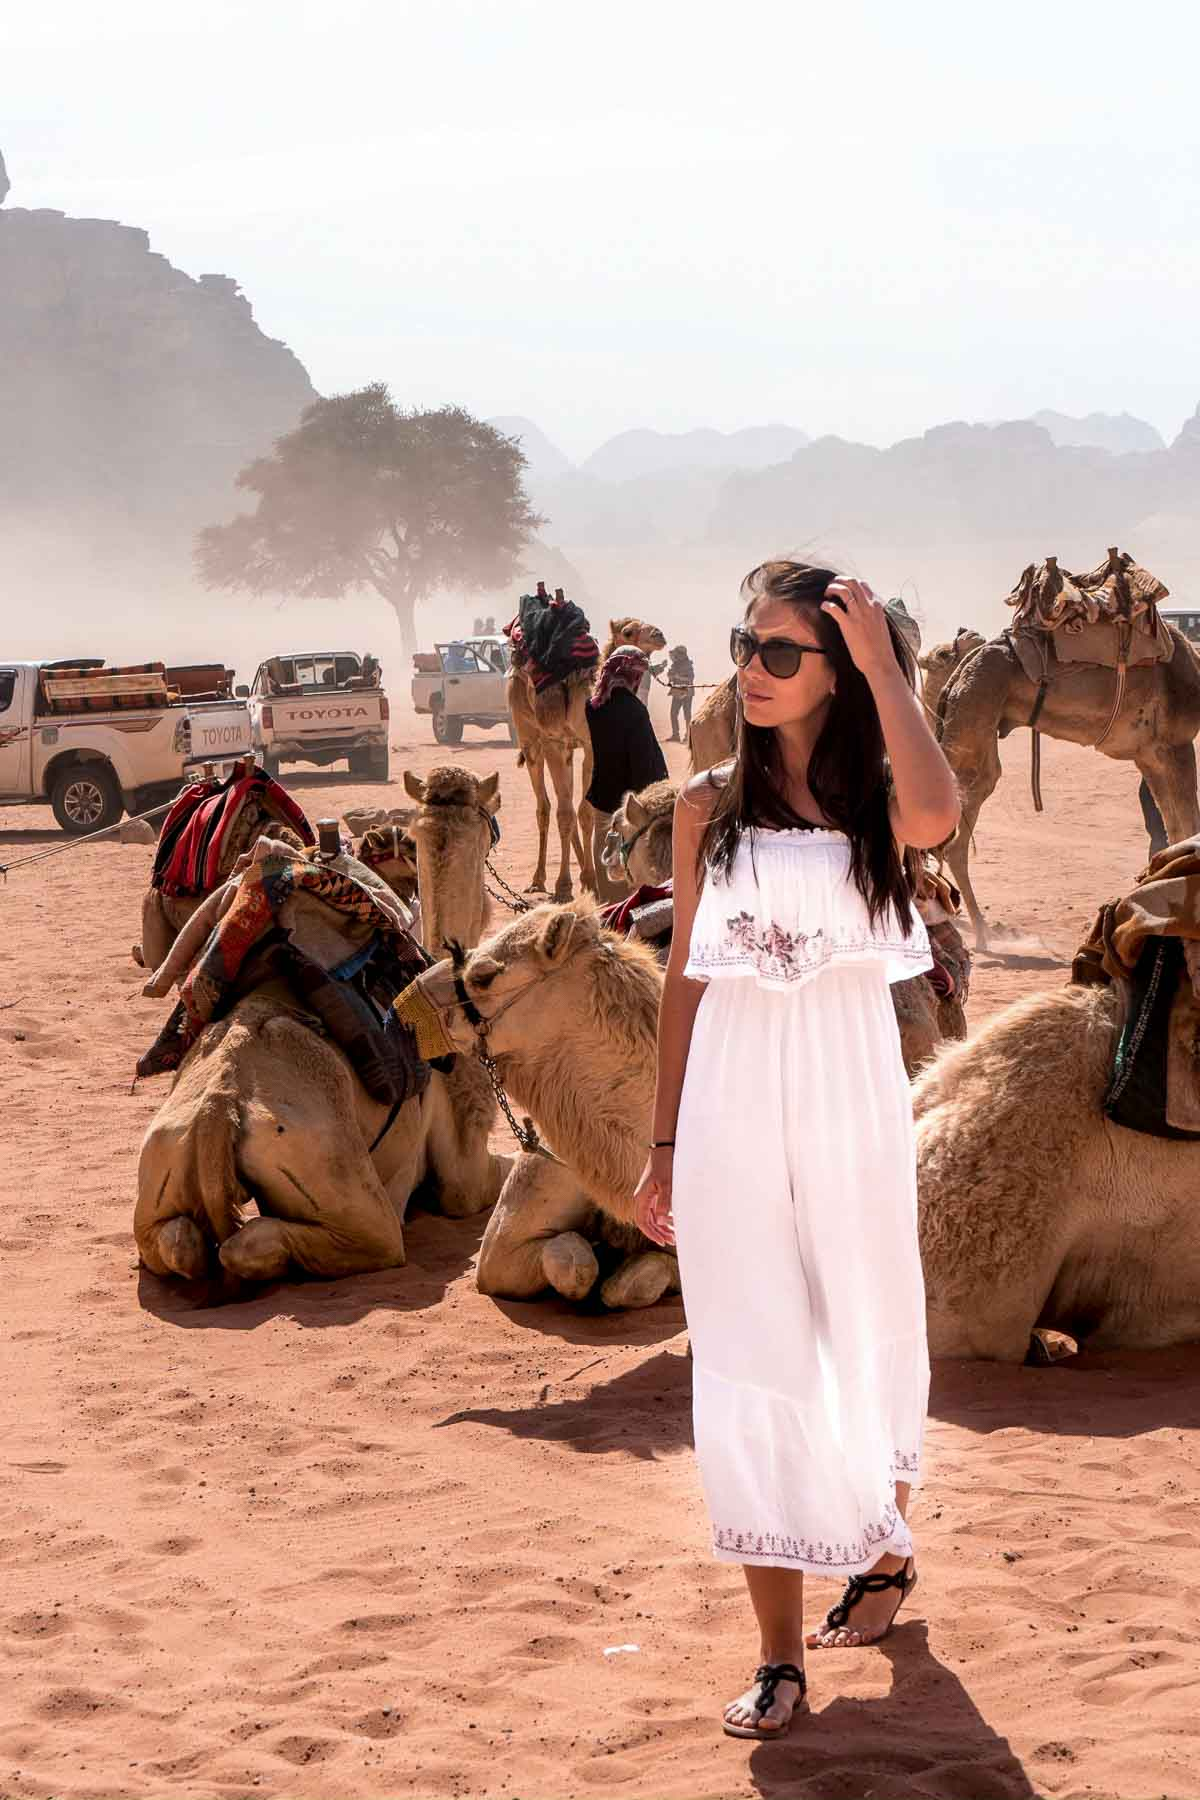 Girl in a white dress standing in front of the camels in the Wadi Rum, Jordan